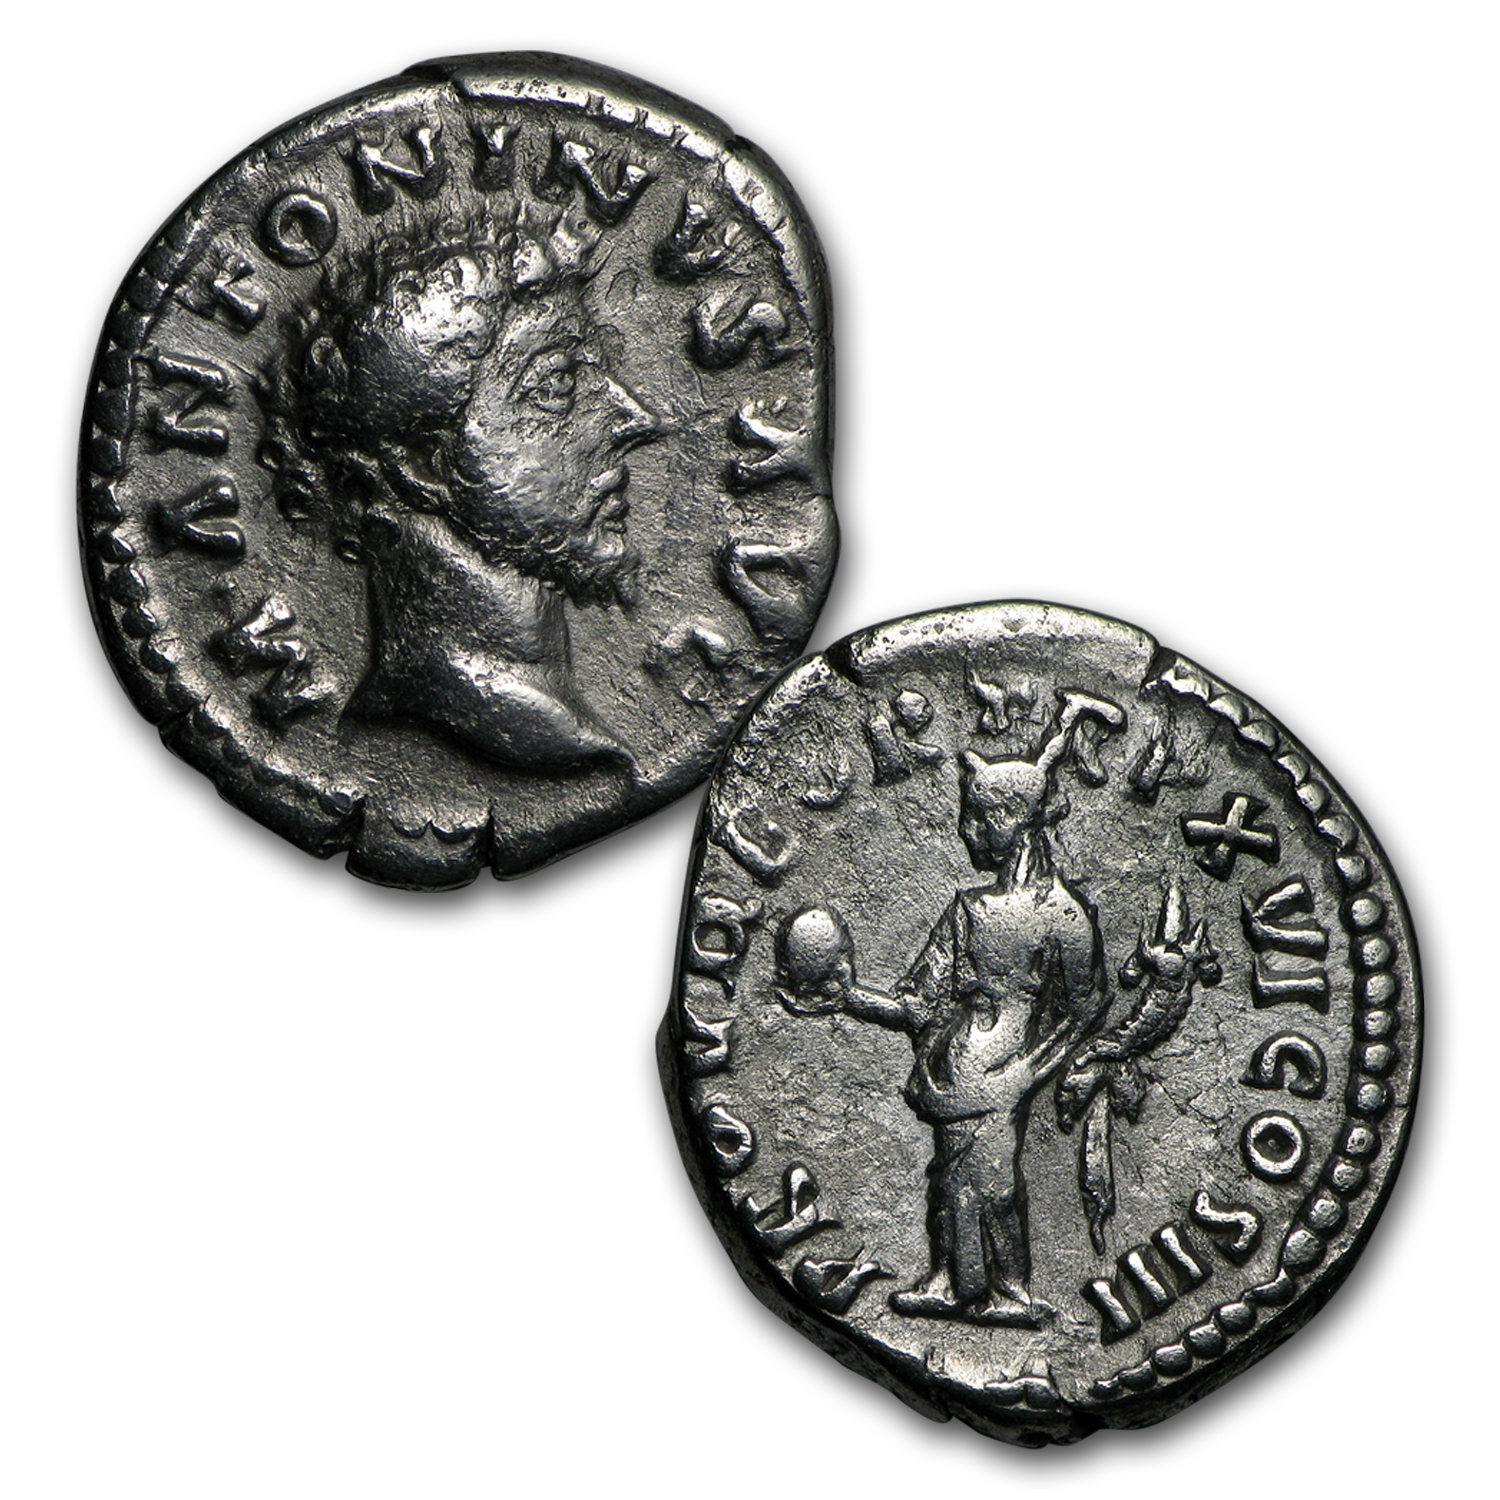 Roman 2-Coin Silver Marcus Aurelius The Philosopher Emperor Set